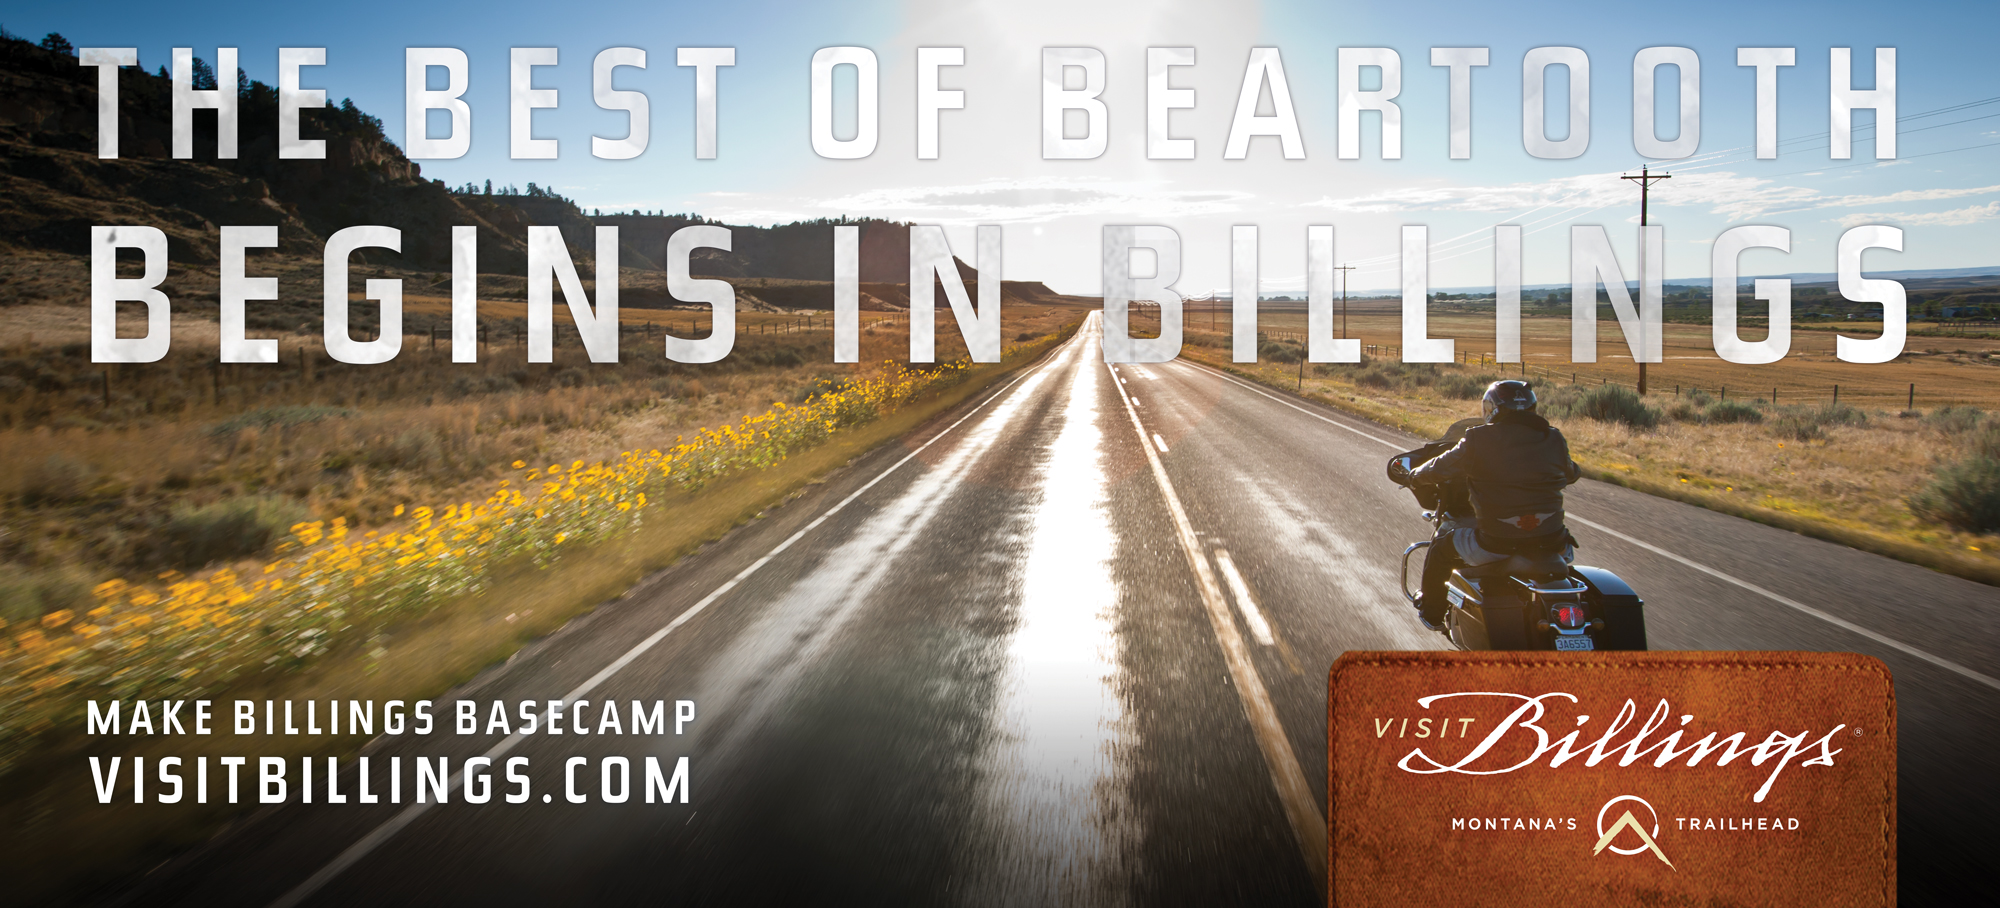 BMT-10664_sturgis_MBB-Side_the-best-of-bear-tooth-1.jpg